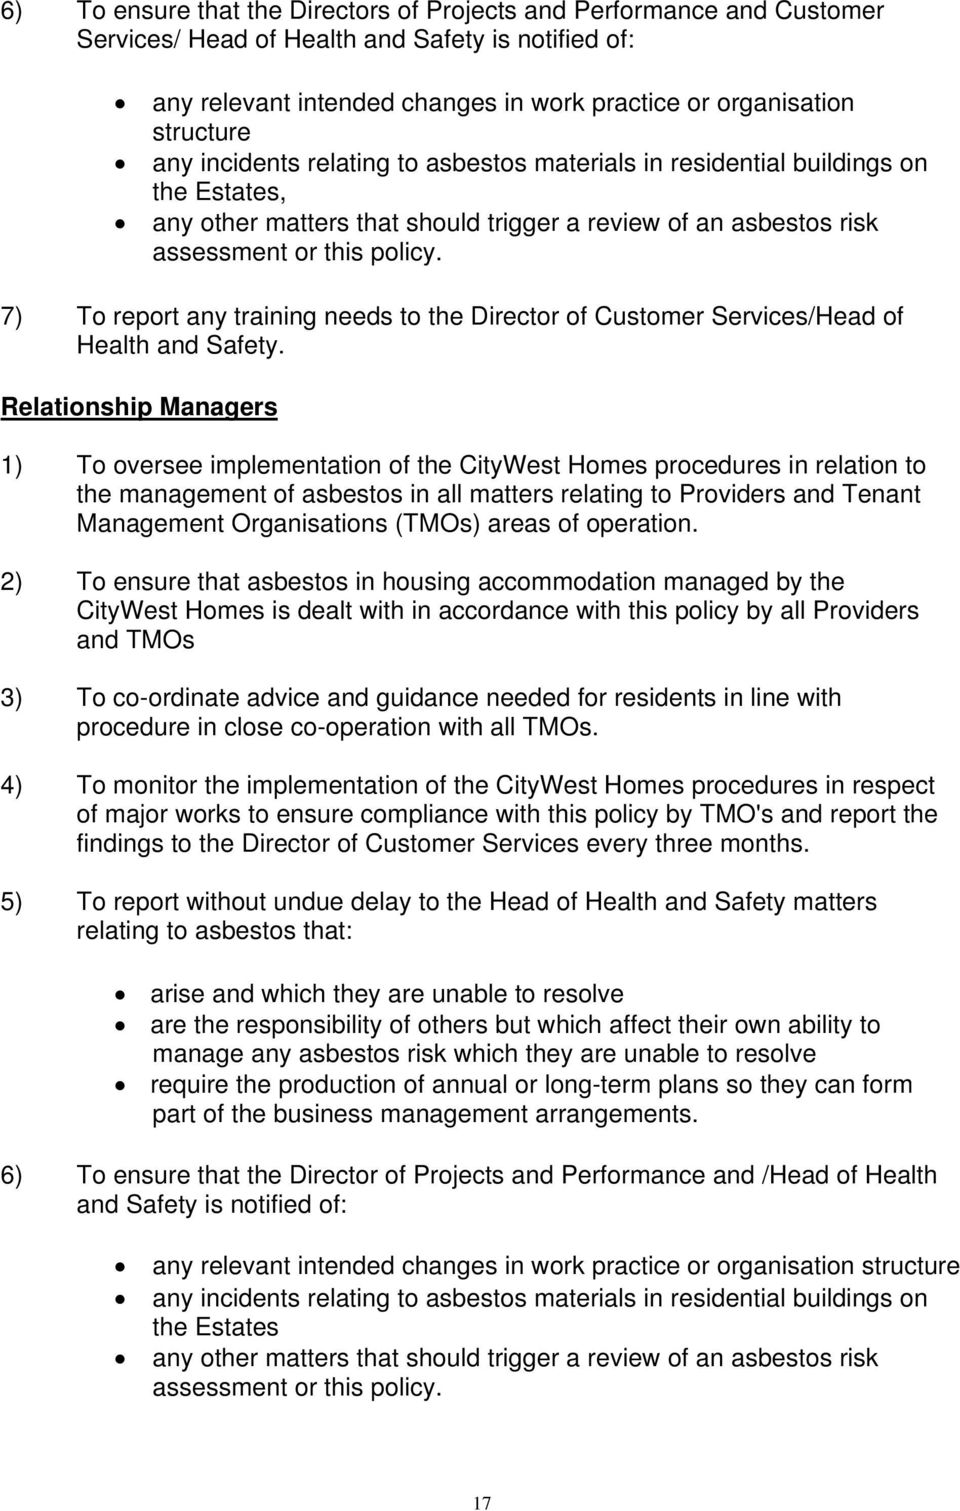 7) To report any training needs to the Director of Customer Services/Head of Health and Safety.